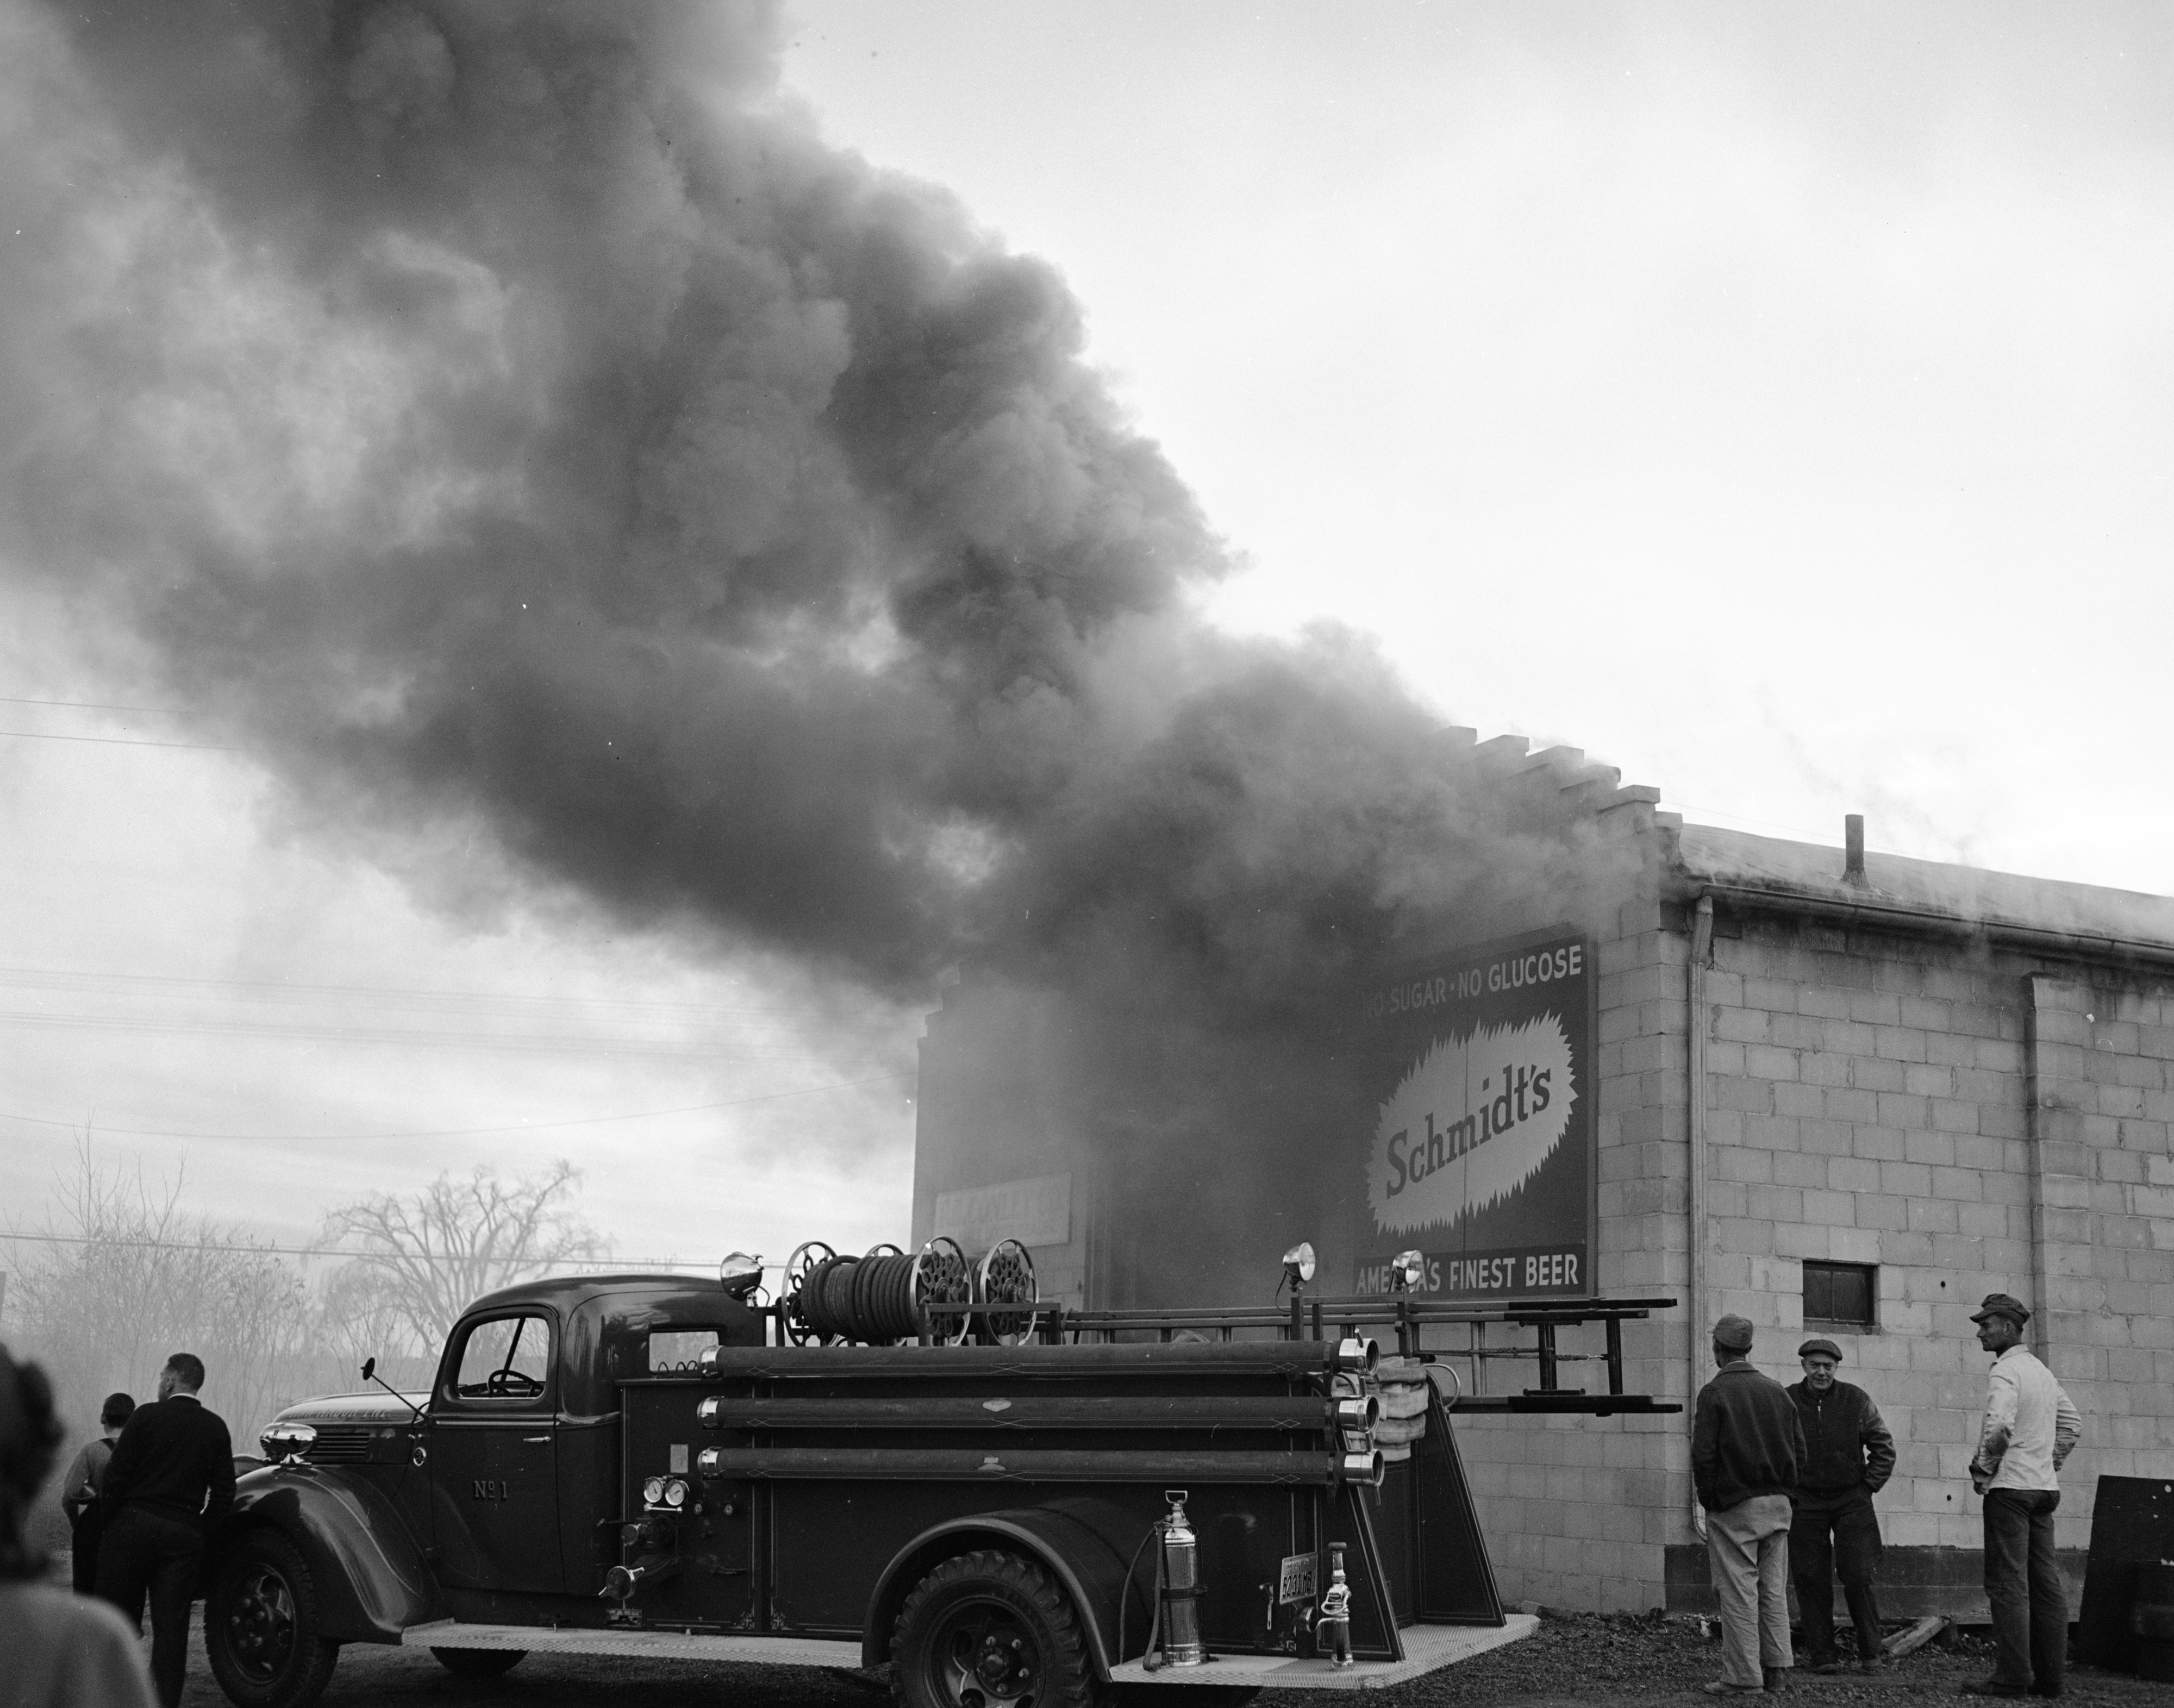 Fire At The F. H. Conley Co. Building, November 1940 image